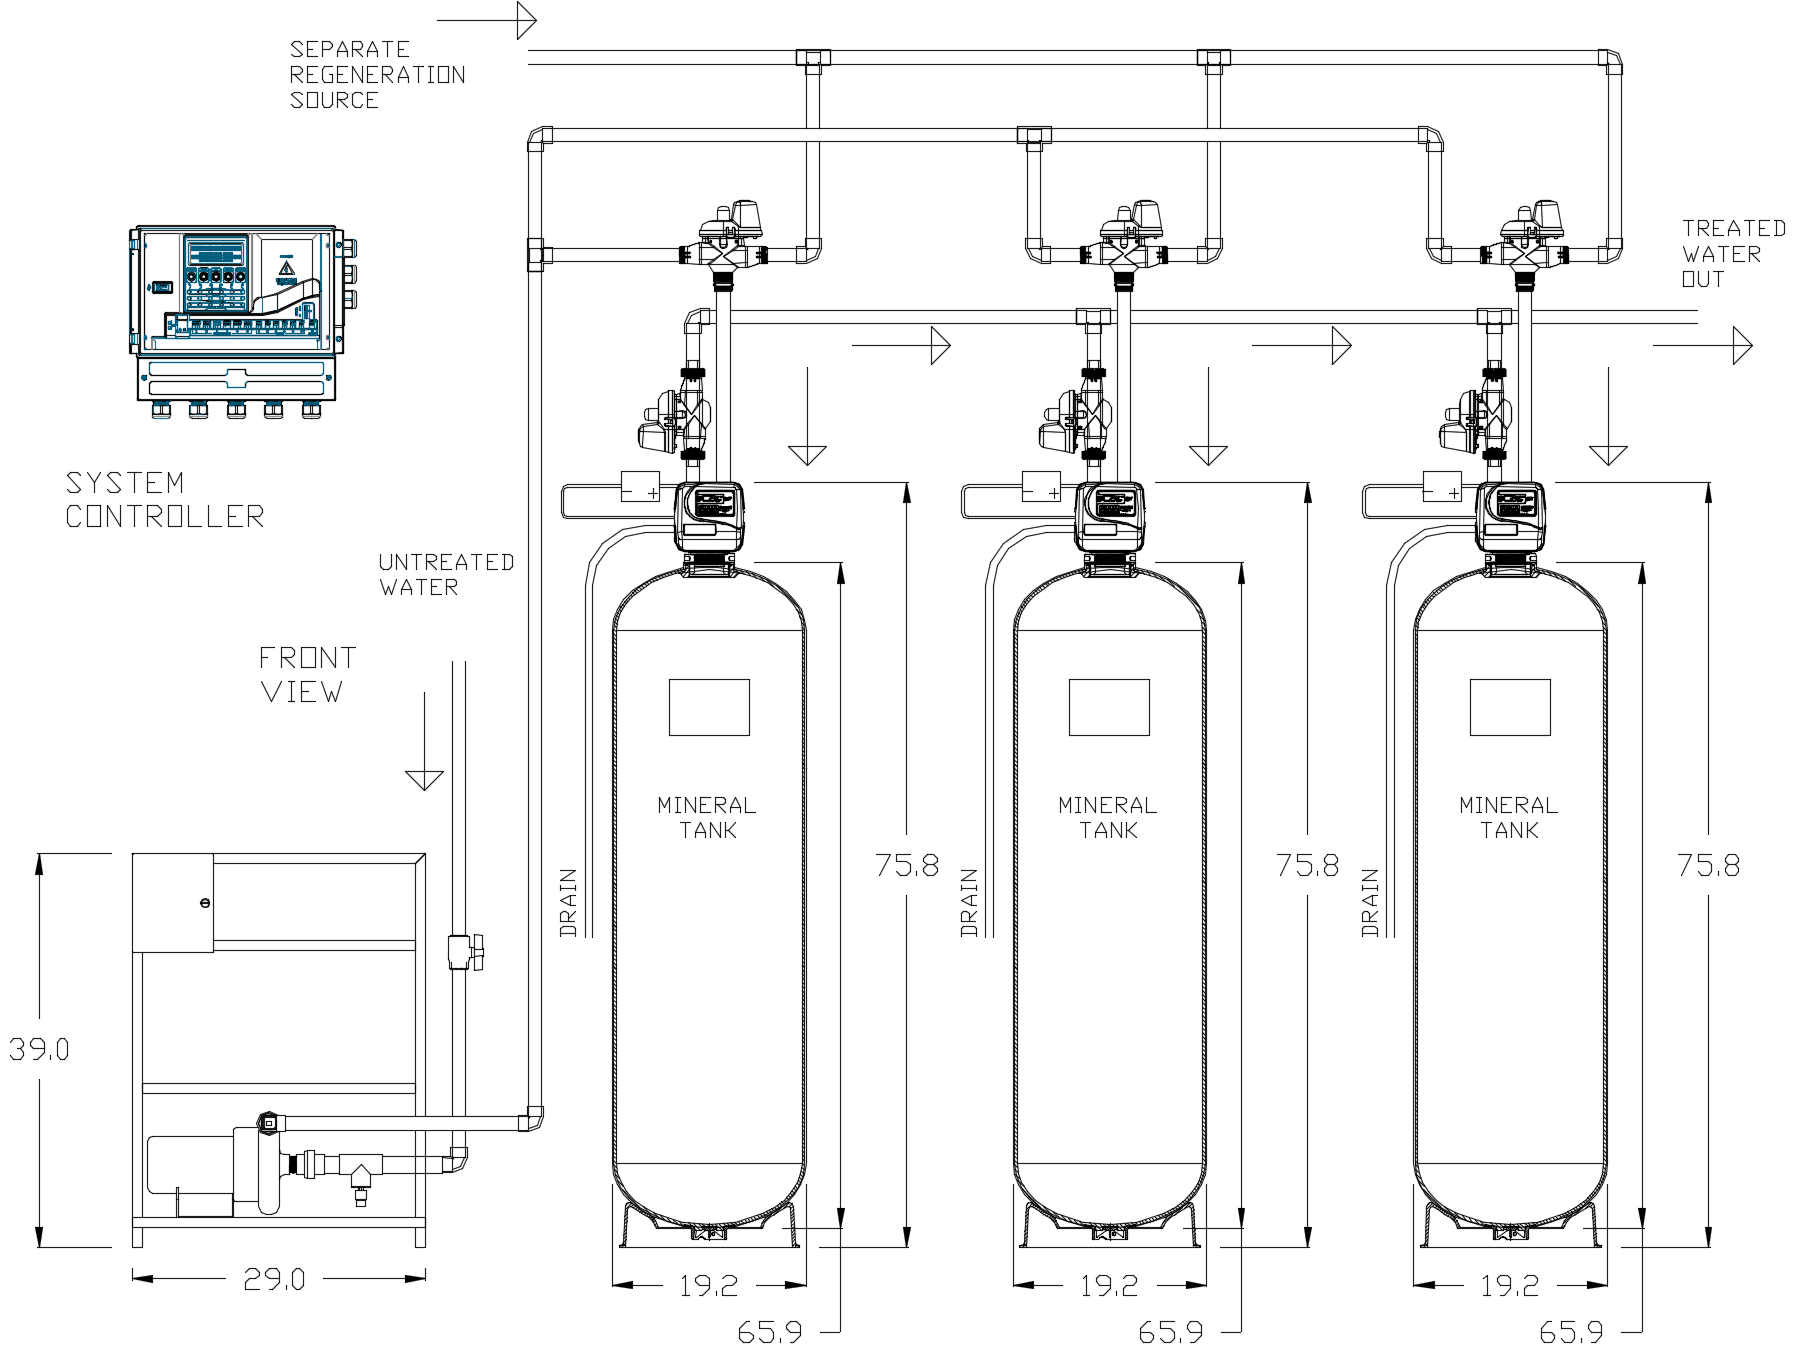 Triplex System Controlled Regeneration Cooling Tower Side Stream 5-Micron Filter System